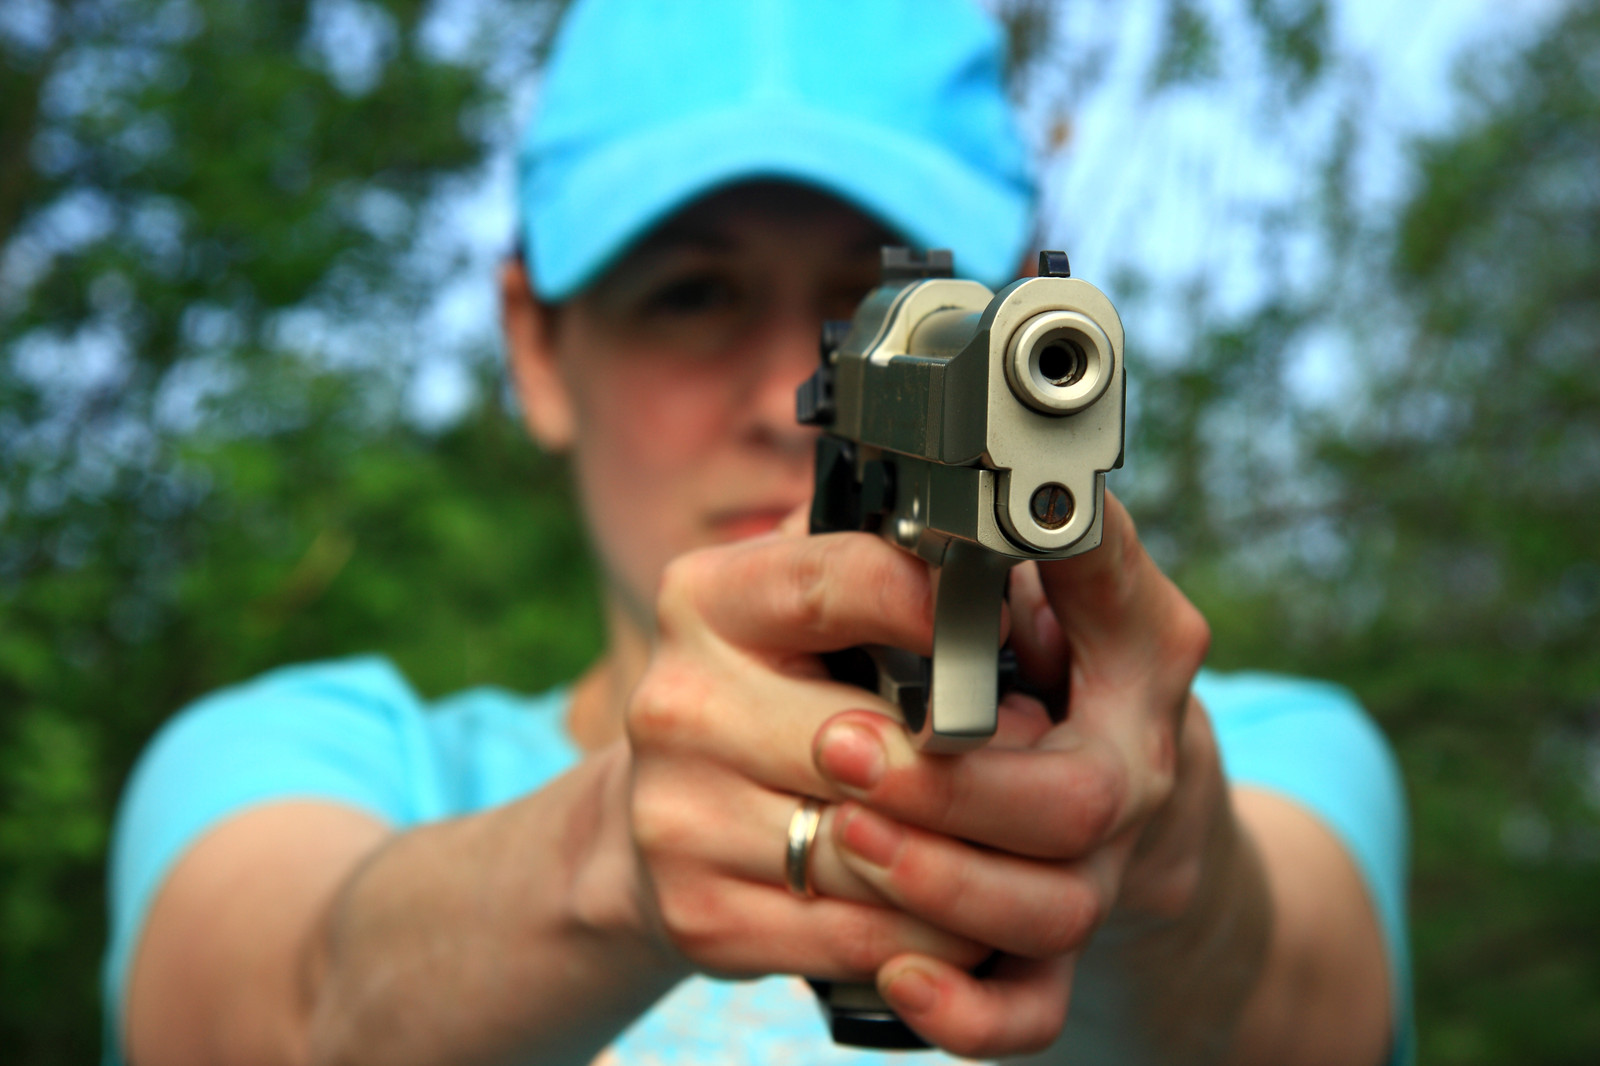 Lead Exposure from Shooting Ranges – Update